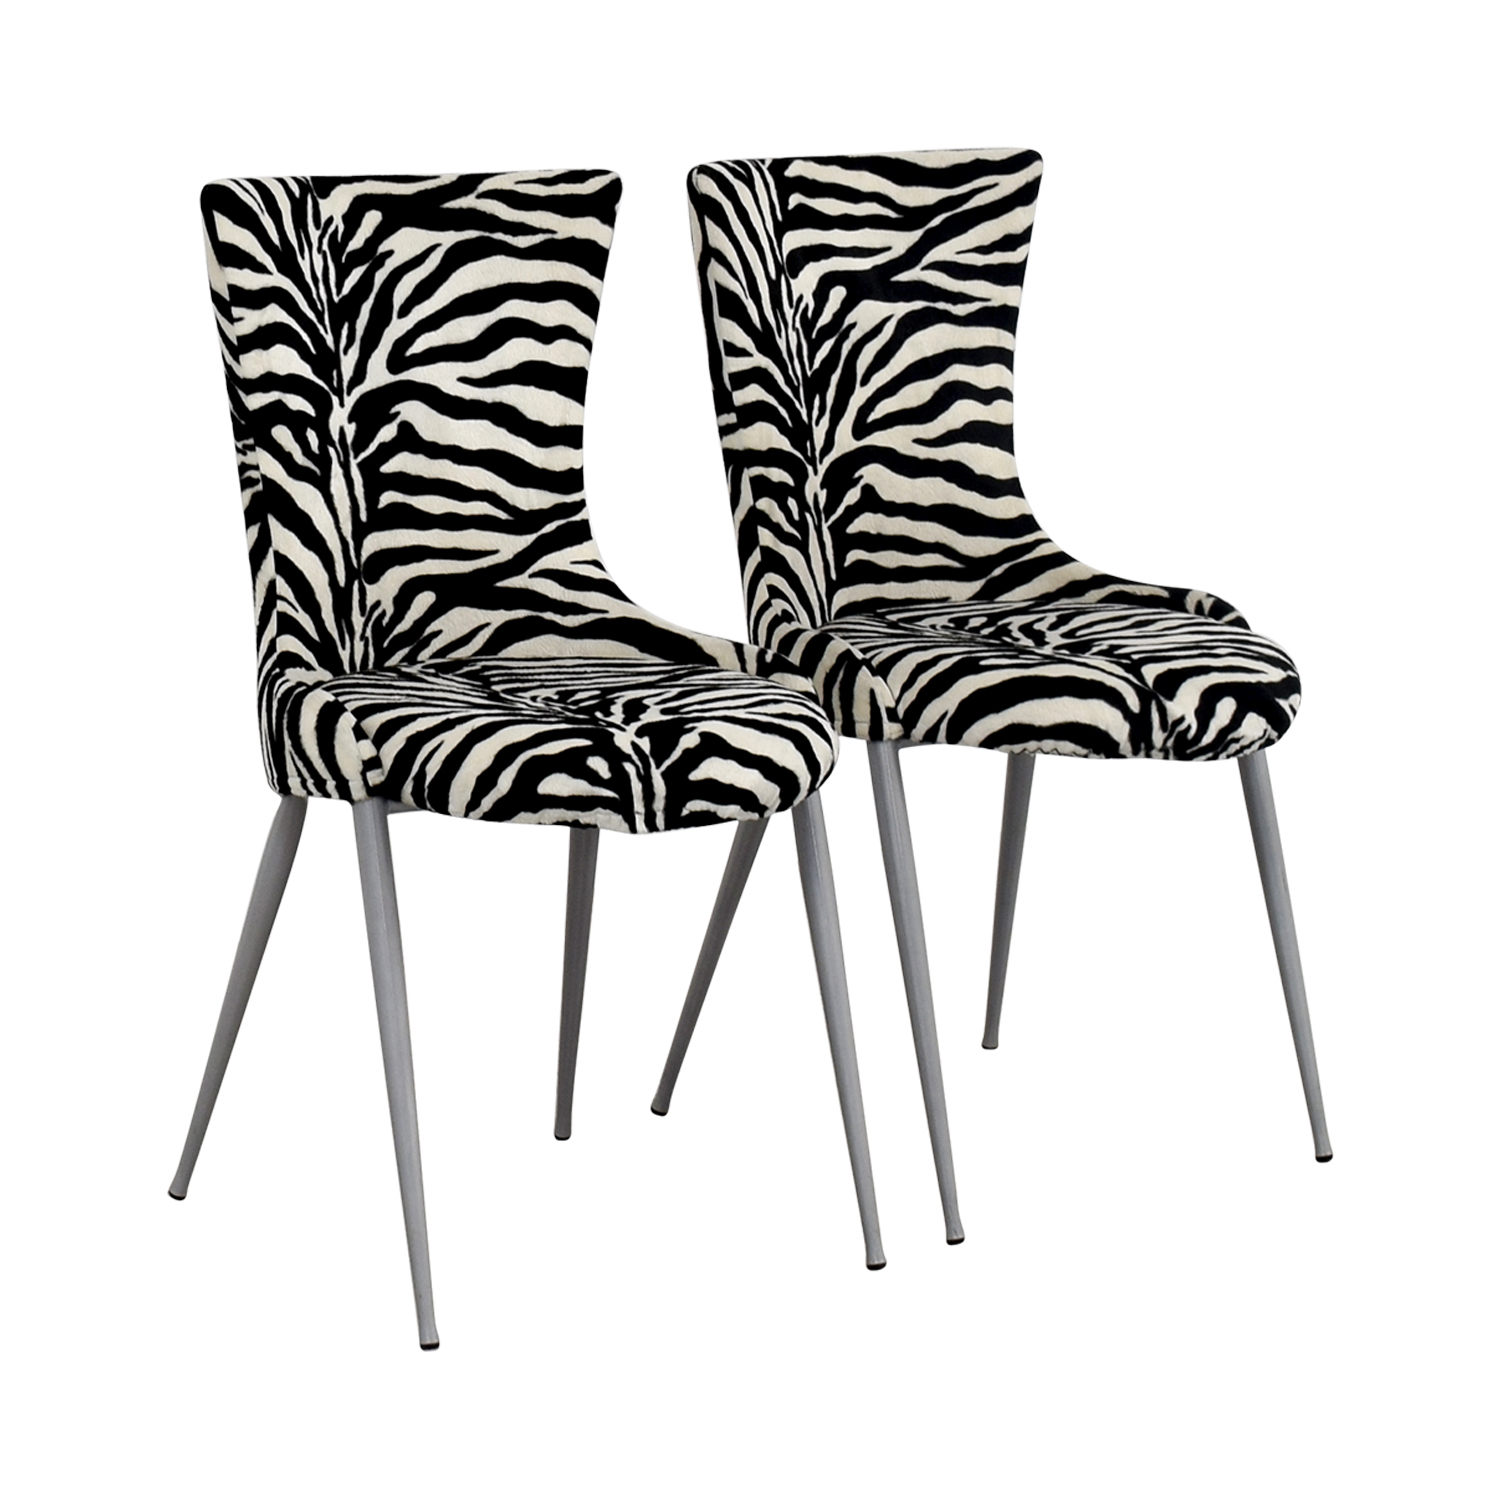 Awesome ... European Furniture Company Contemporary Zebra Dining Chairs / Dining  Chairs ...